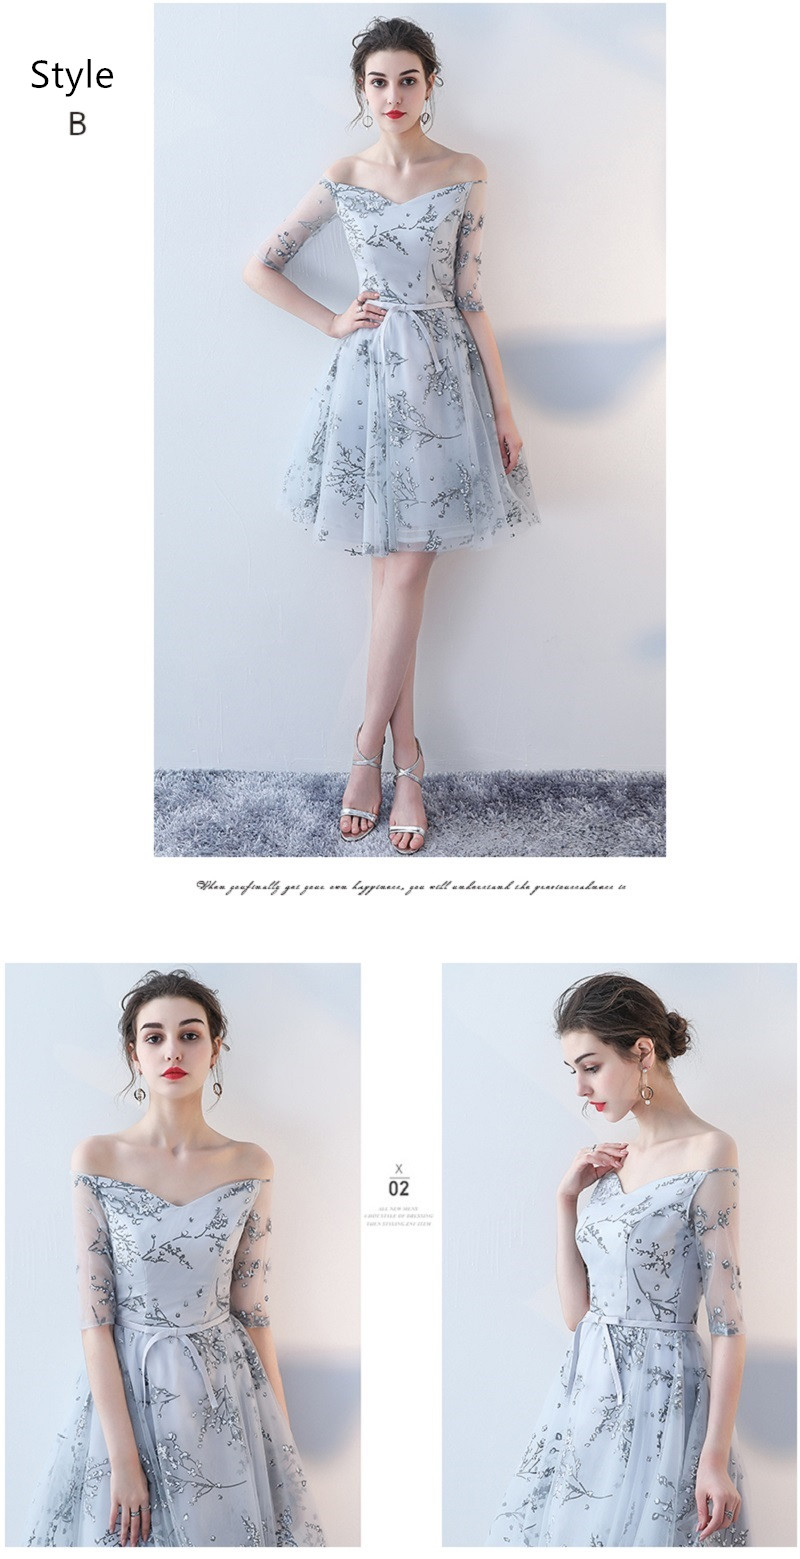 Flower Pattern Sashes Lace Knee Length Bridesmaid Dress 9